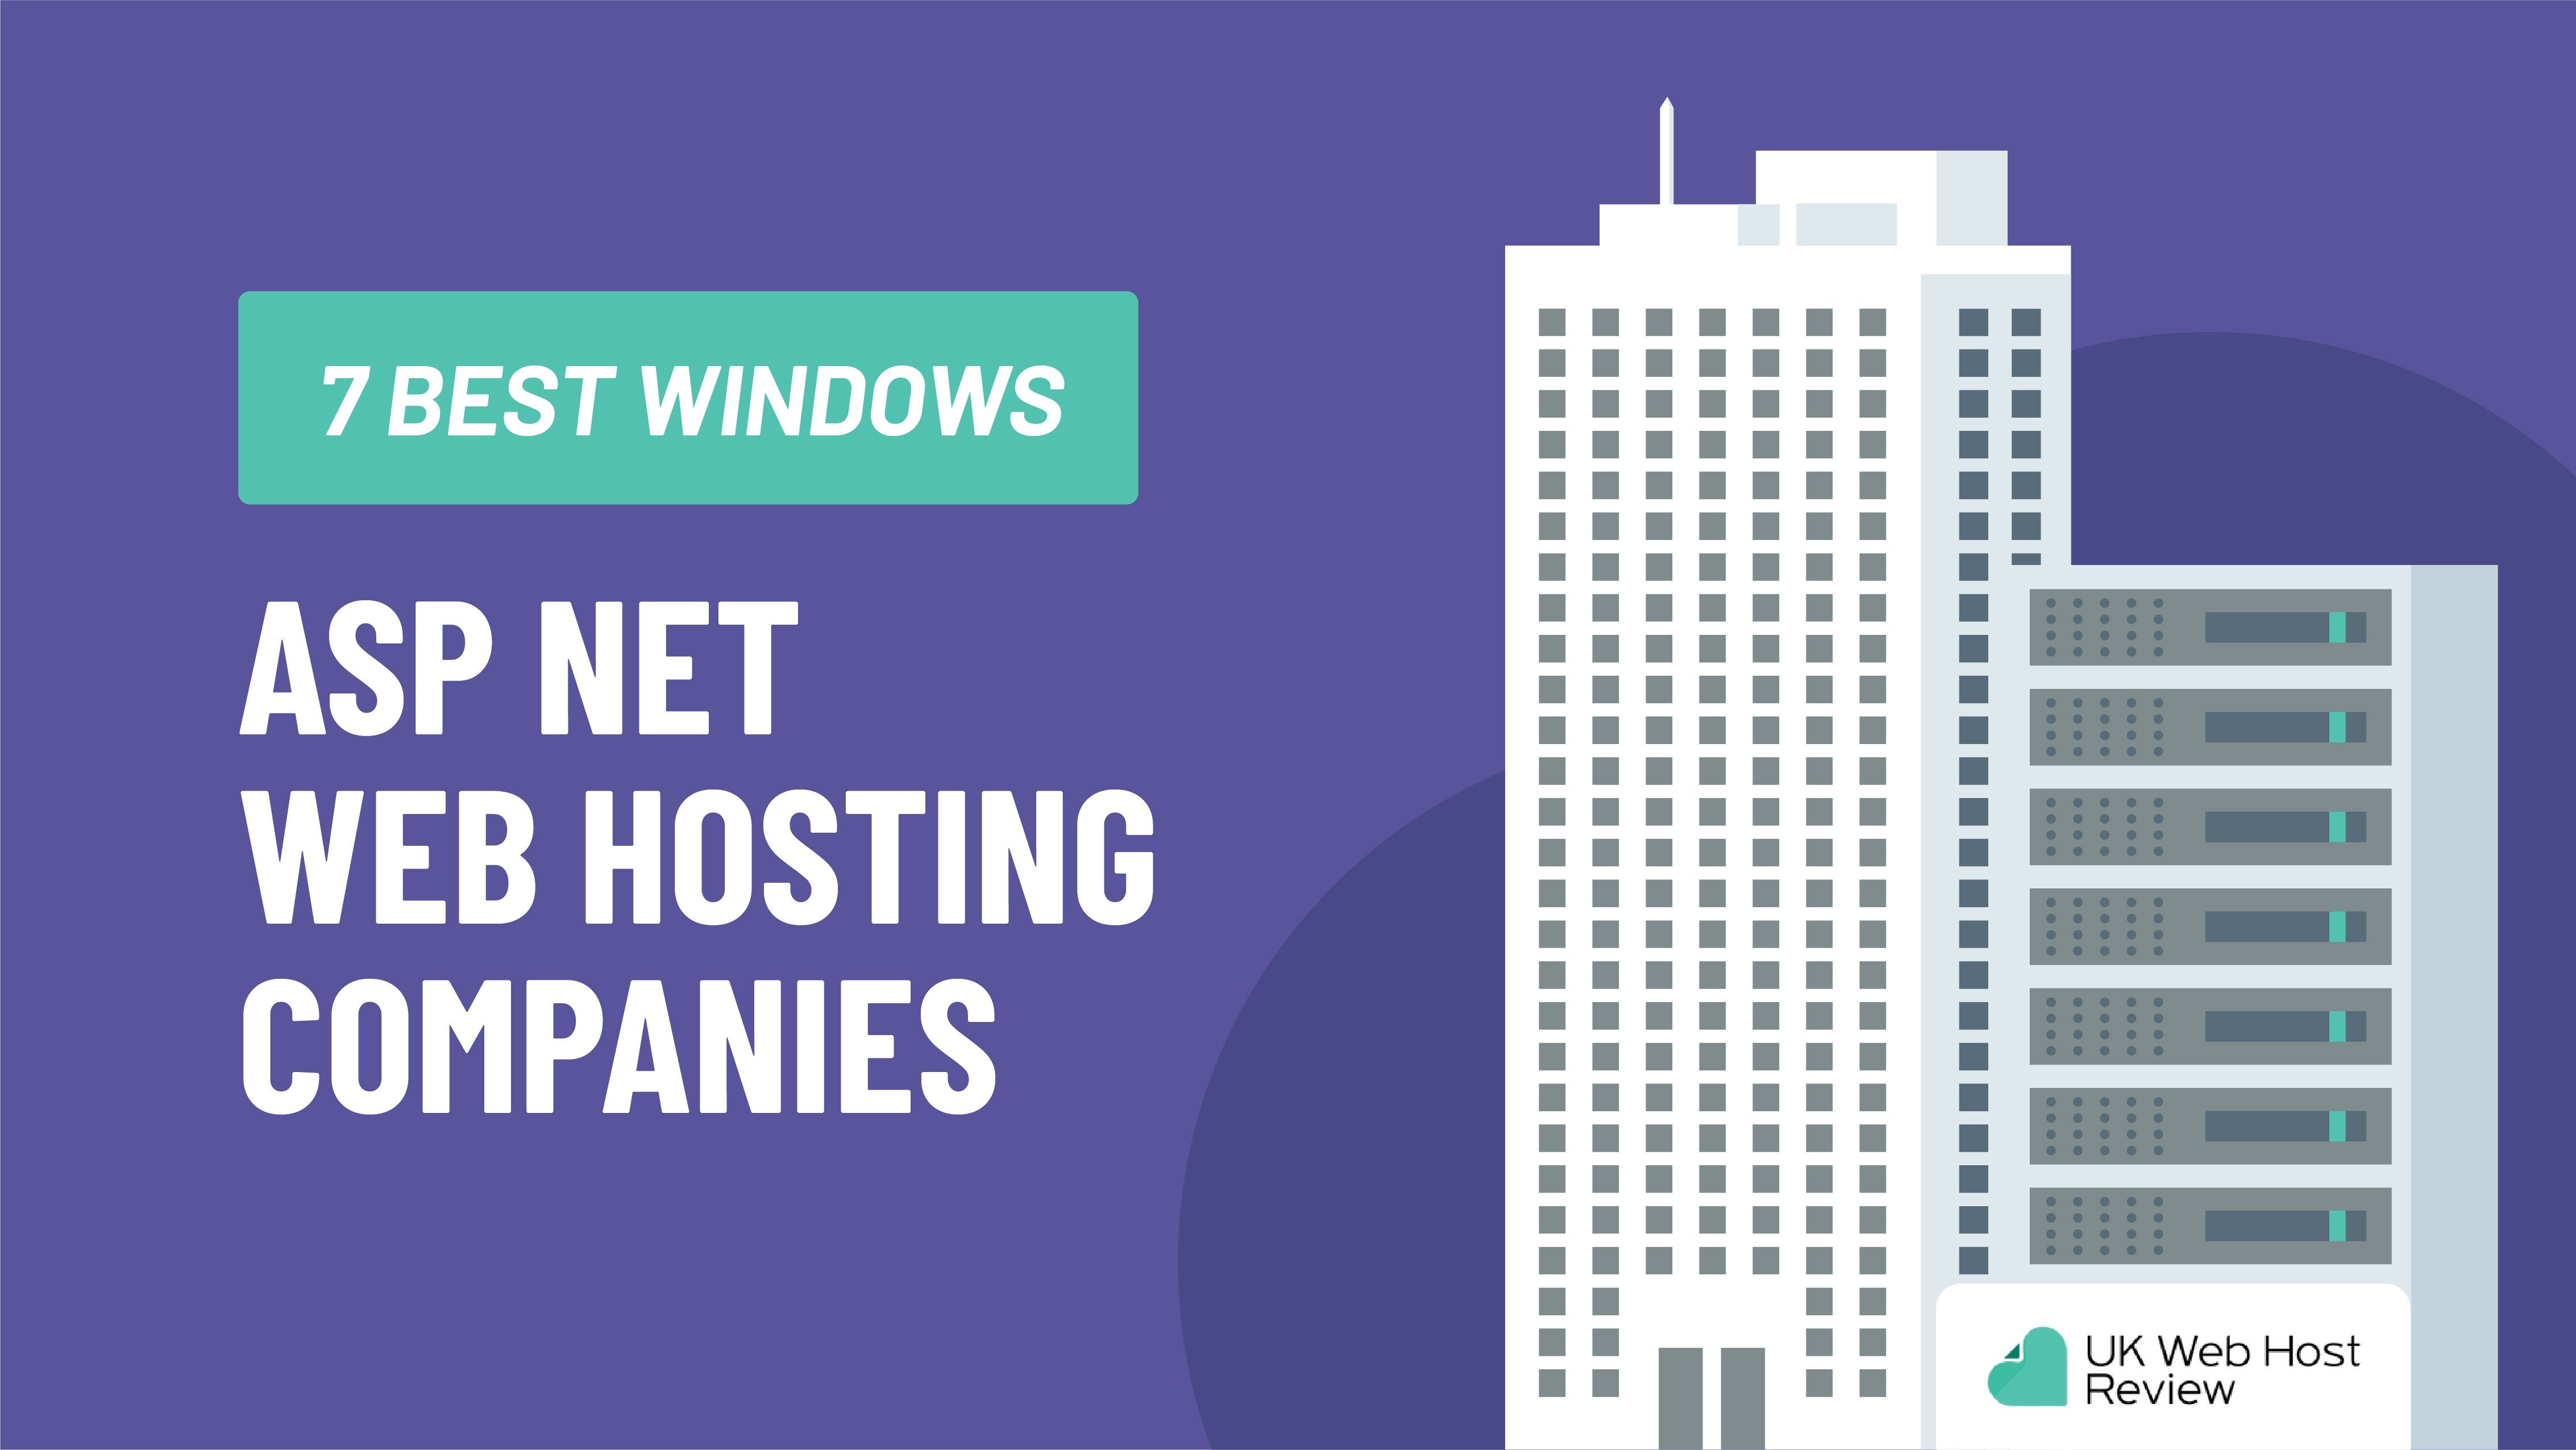 7 Best Windows Web Hosting Providers Compared